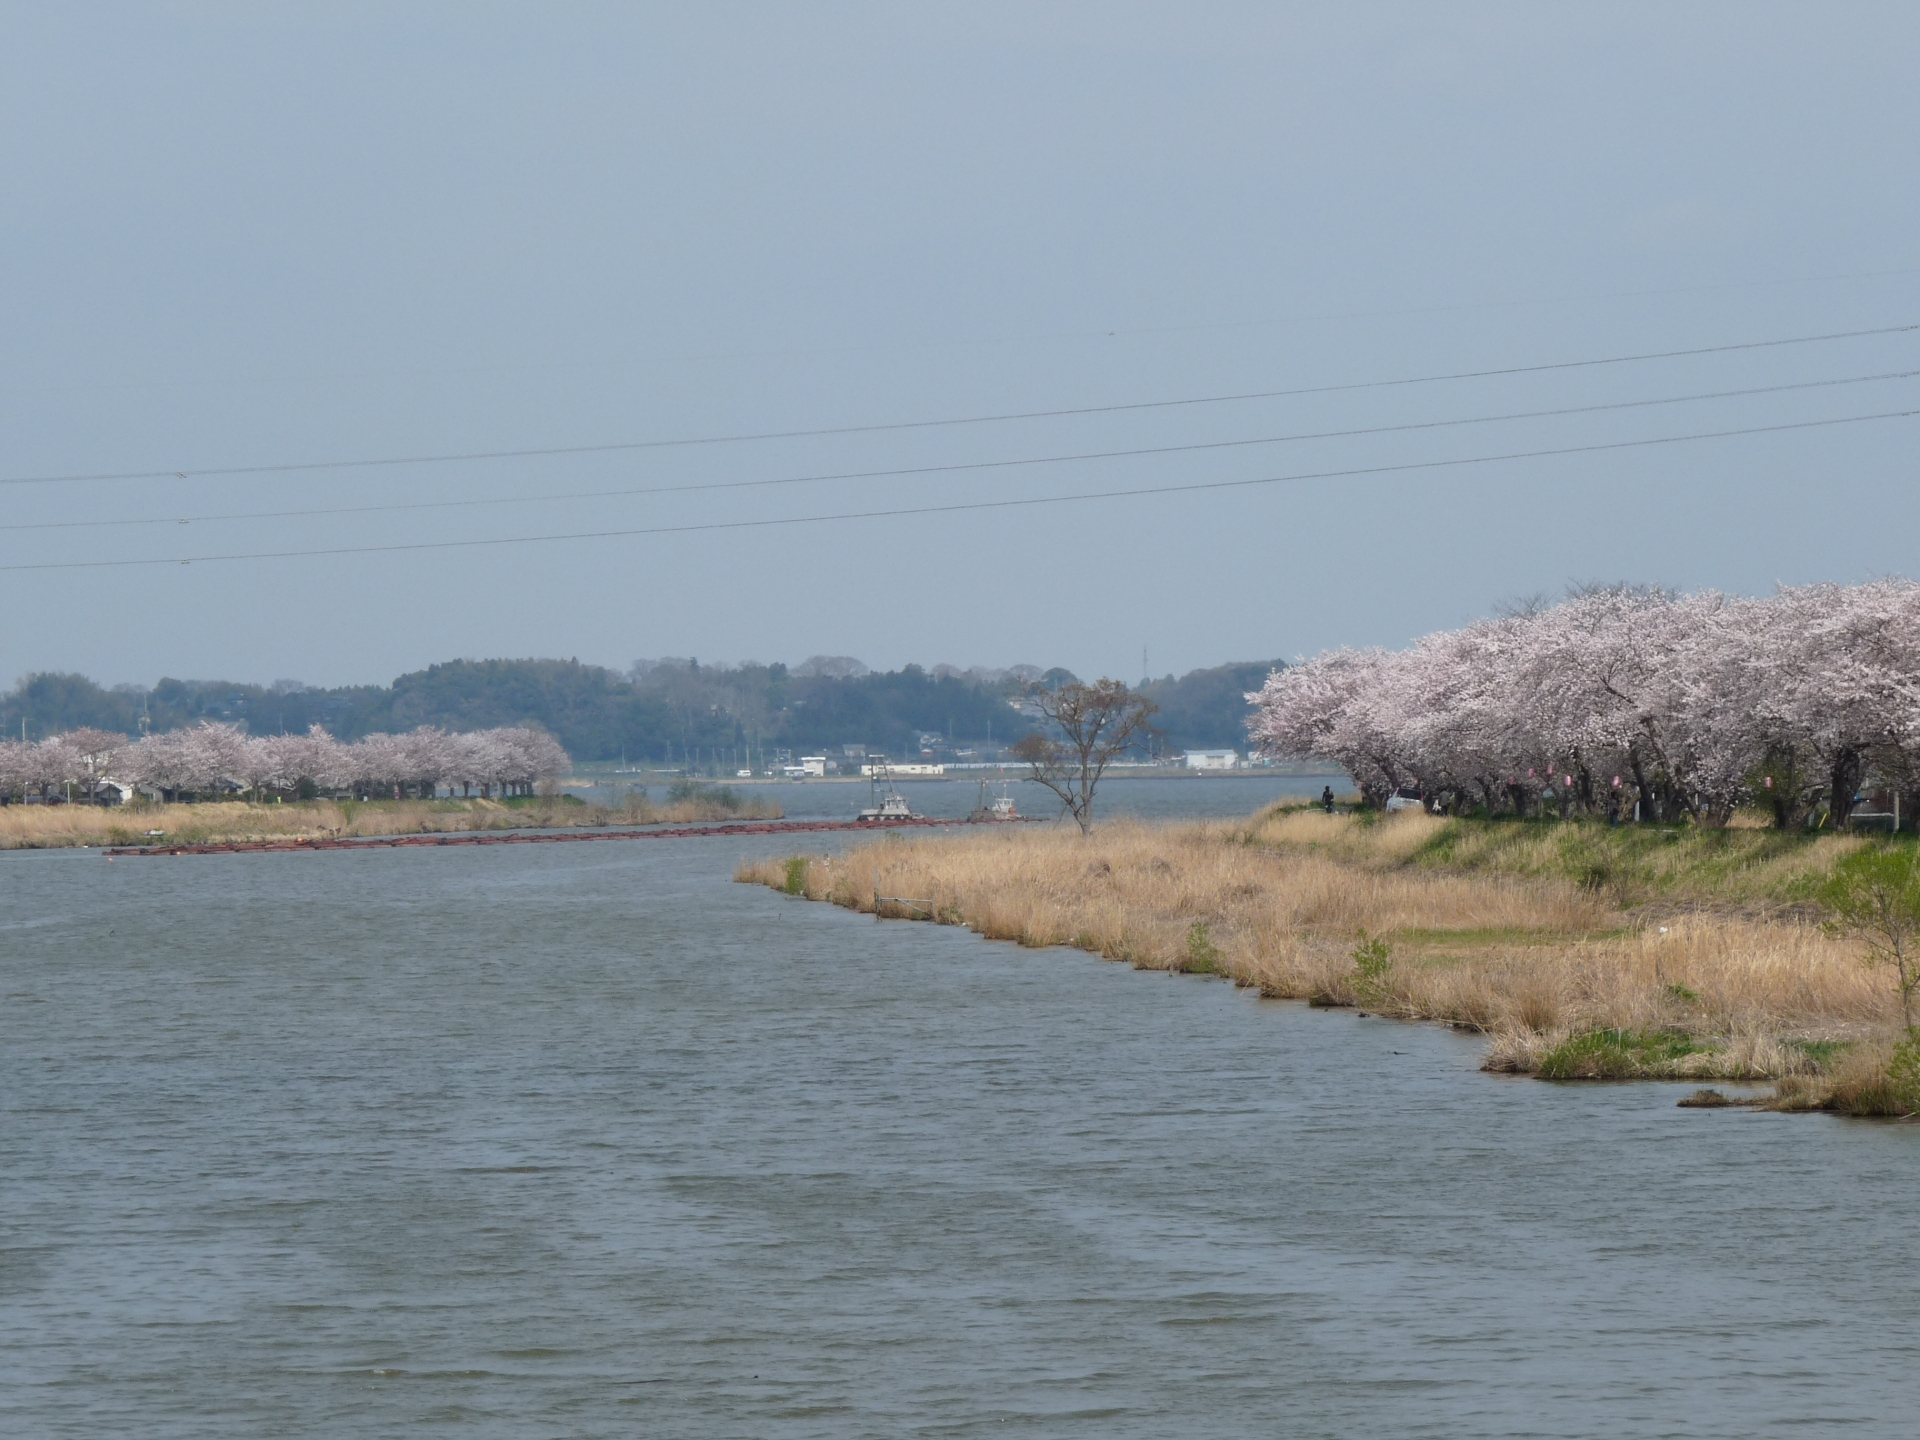 The river flows into Lake Kasumigaura